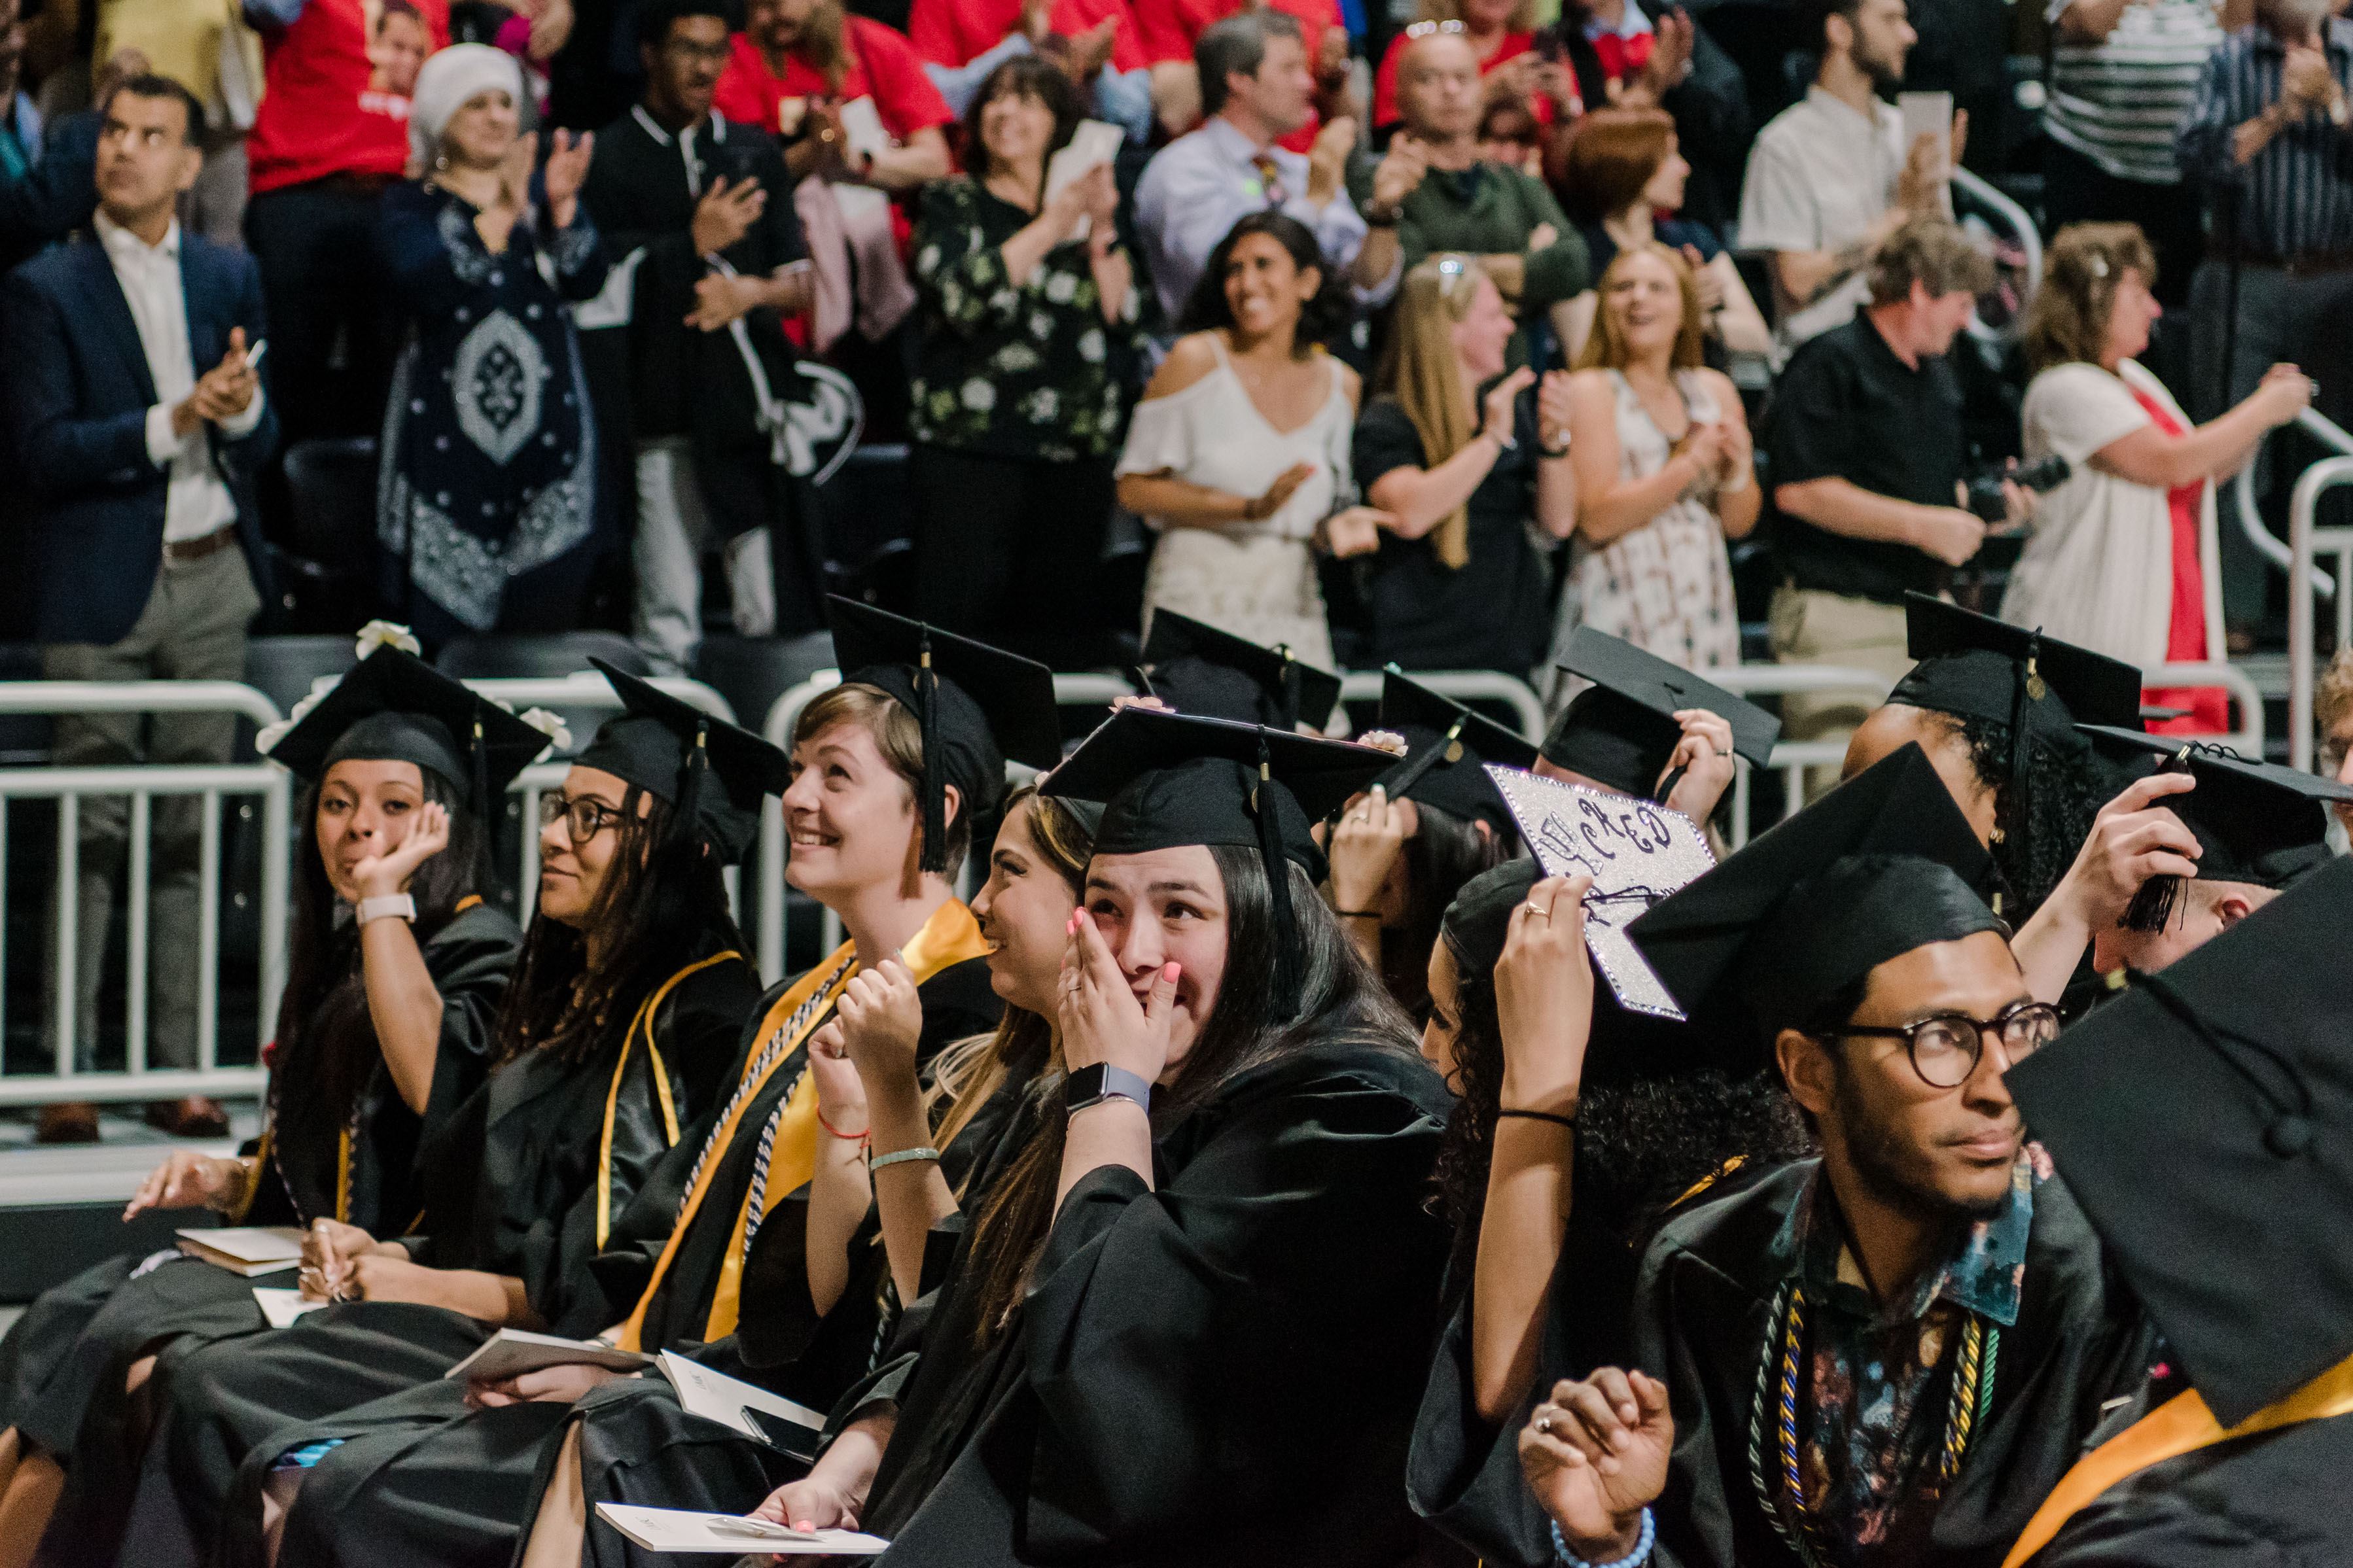 An emotional student wipes away tears during spring commencement 2019